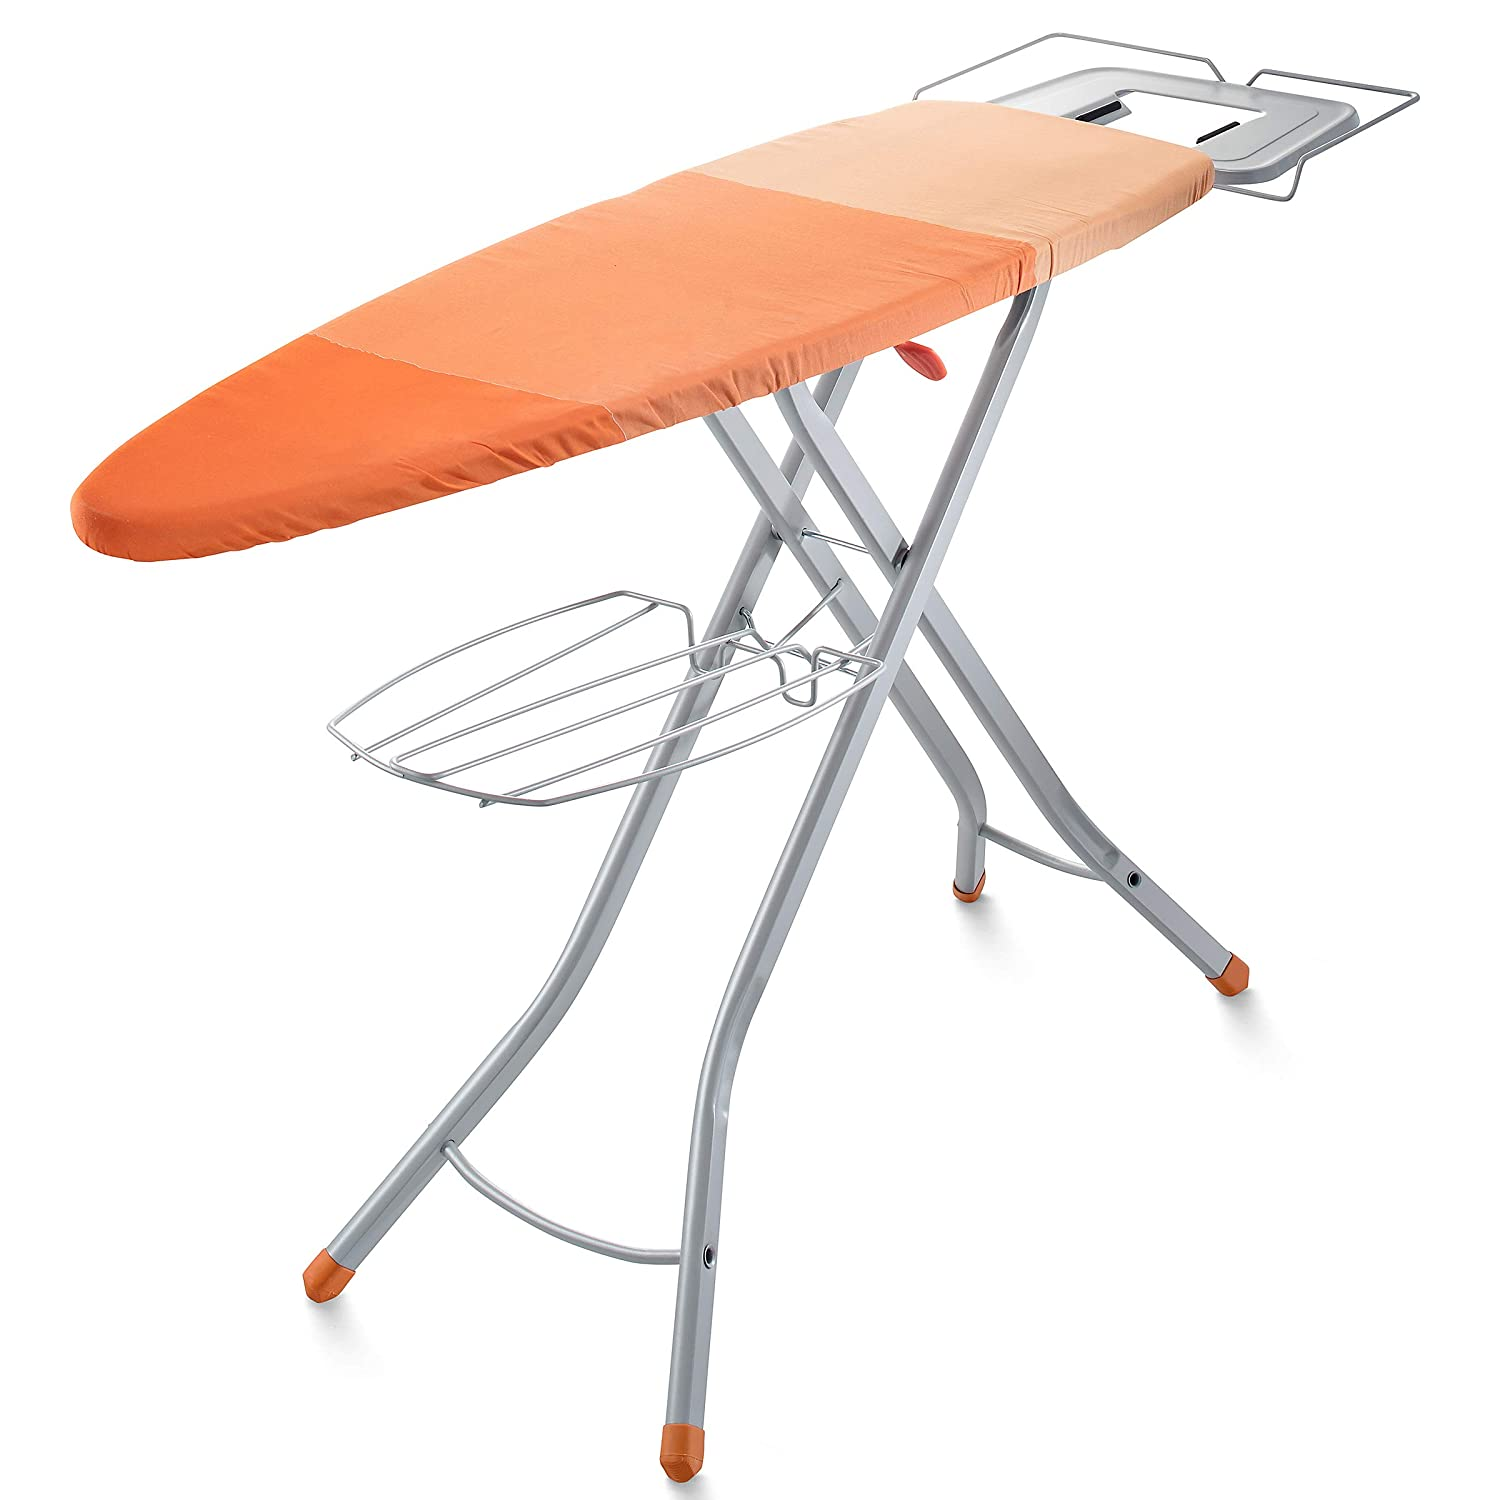 Bartnelli Heavy Duty Ironing Board (Orange)